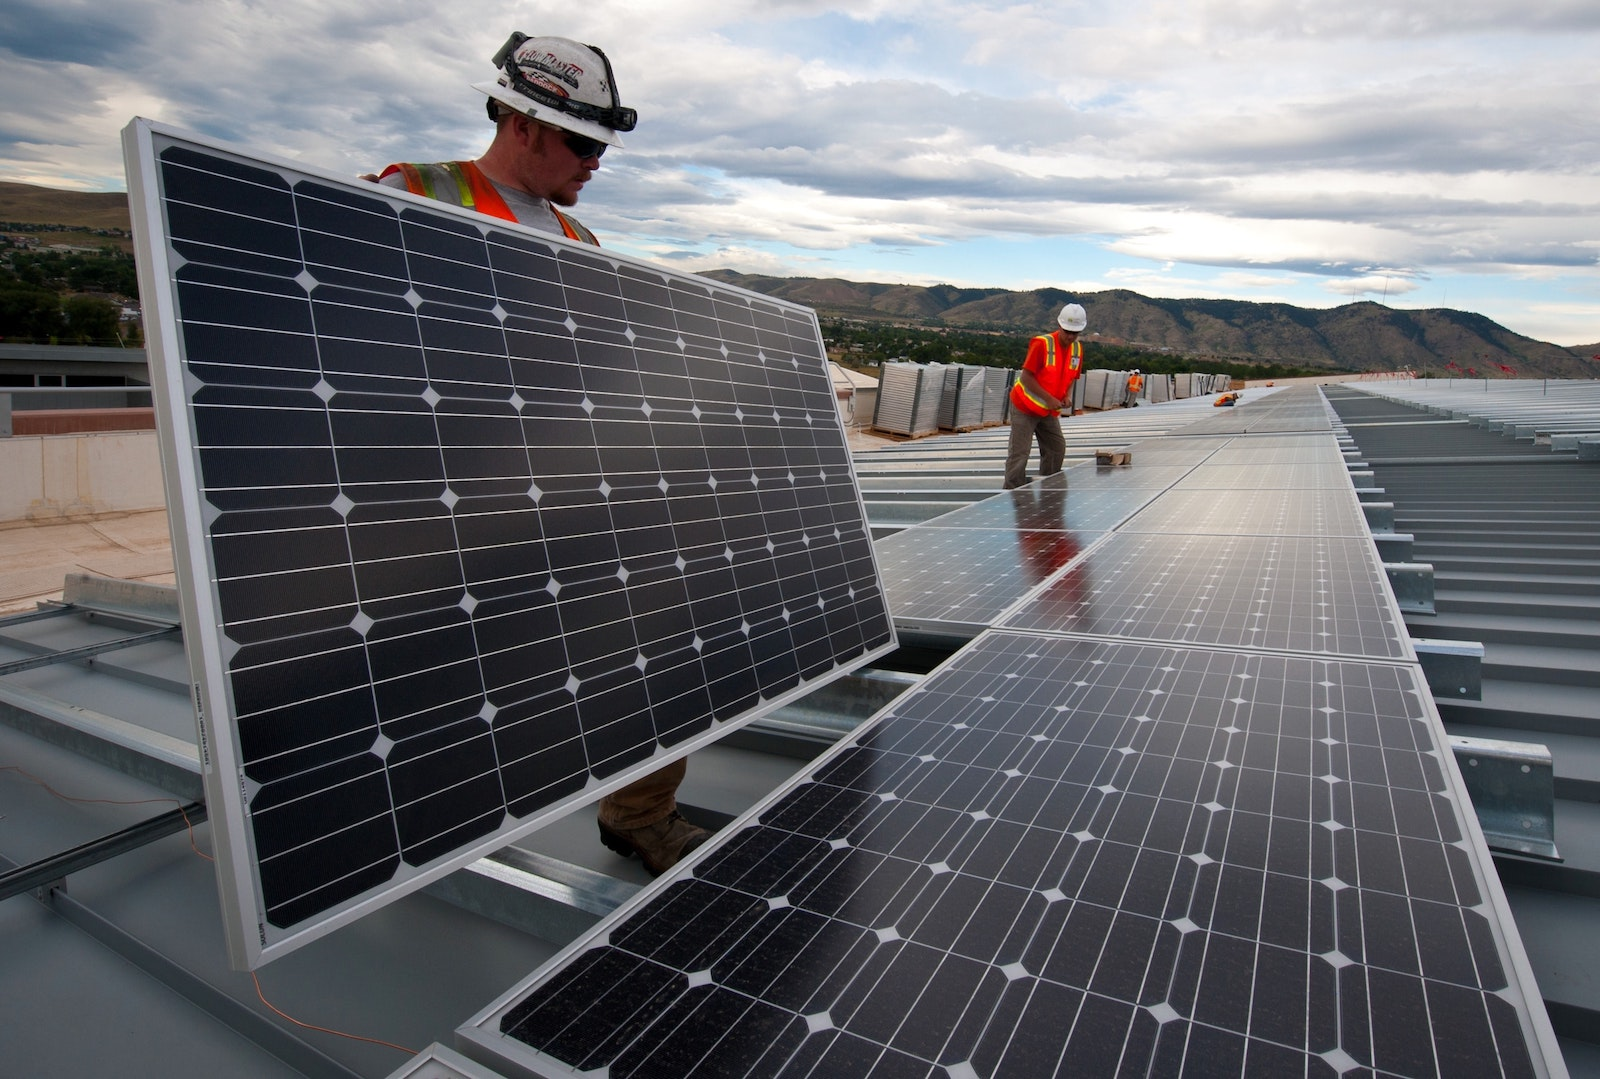 How Long Do Solar Panels Last? The Typical Lifespan